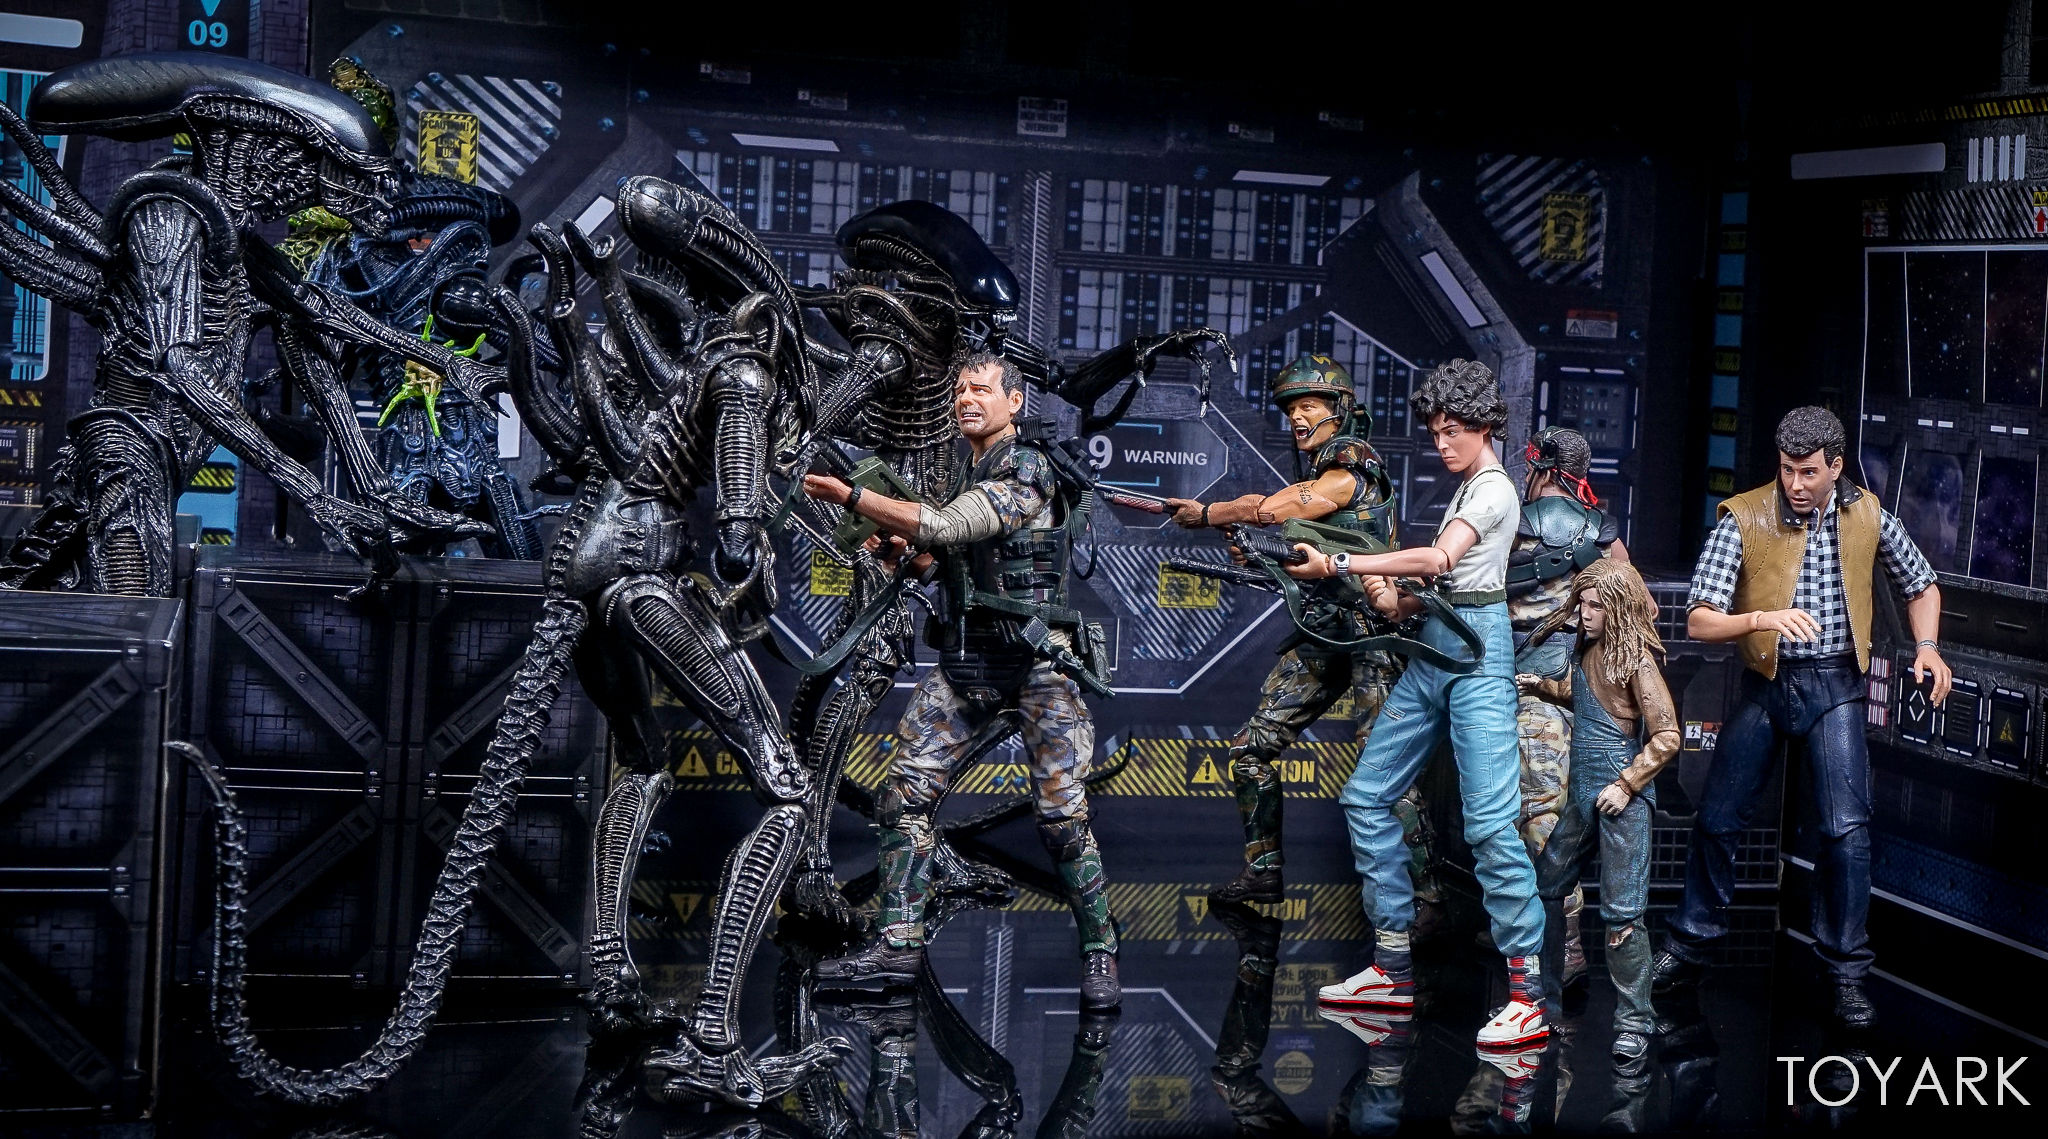 http://news.toyark.com/wp-content/uploads/sites/4/2017/09/Aliens-Hadleys-Hope-2-Pack-039.jpg